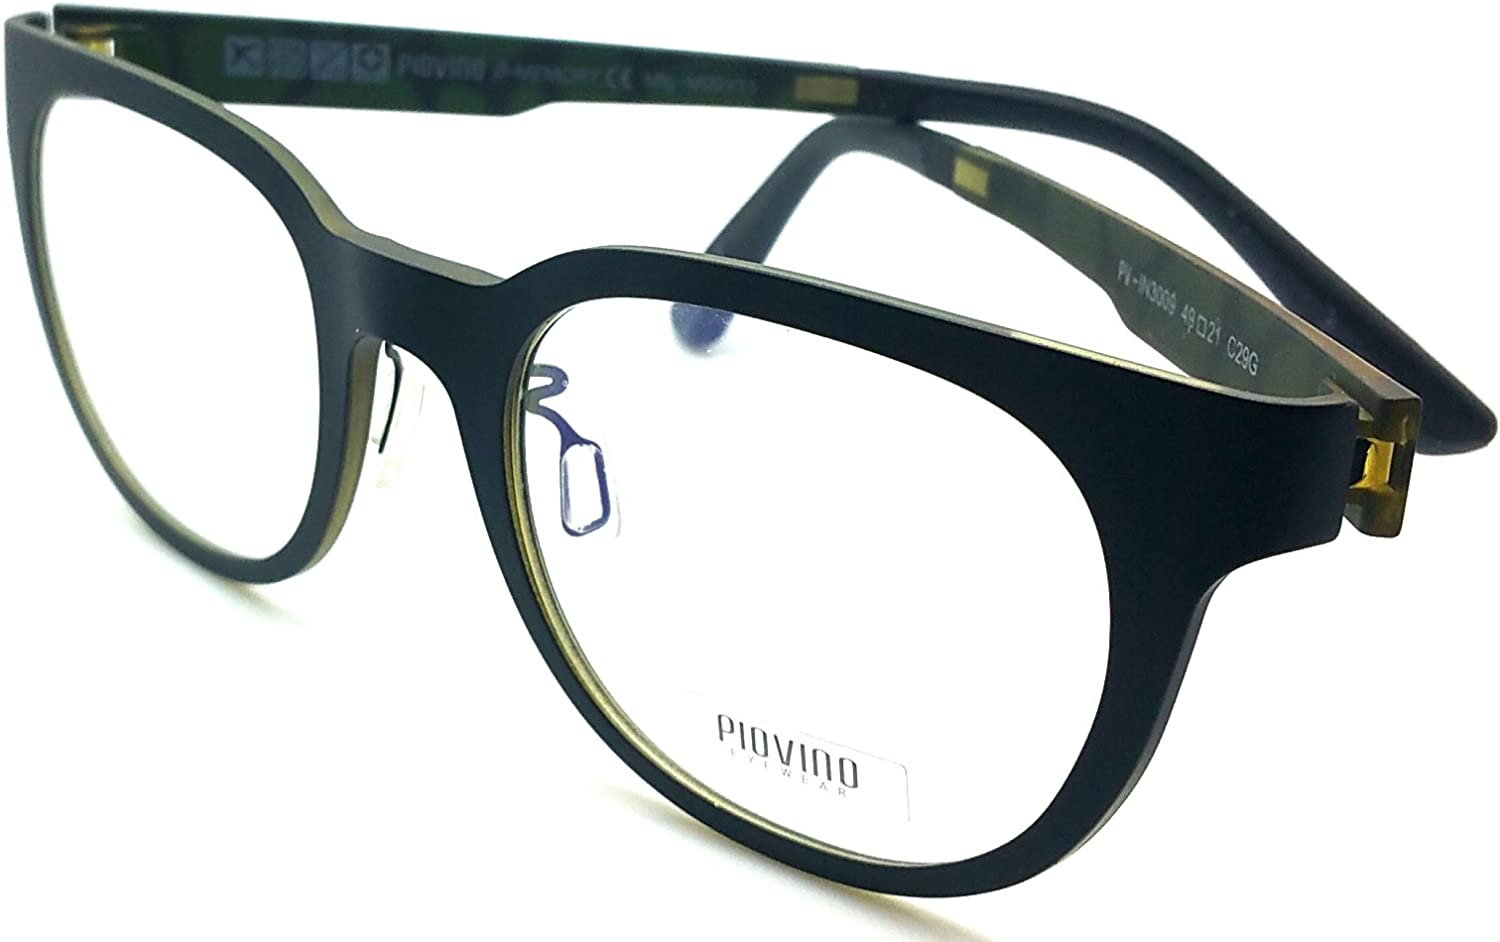 Piovino Prescription Eye Glasses Frame Ultem Super Light, Flexible 3009 C29G